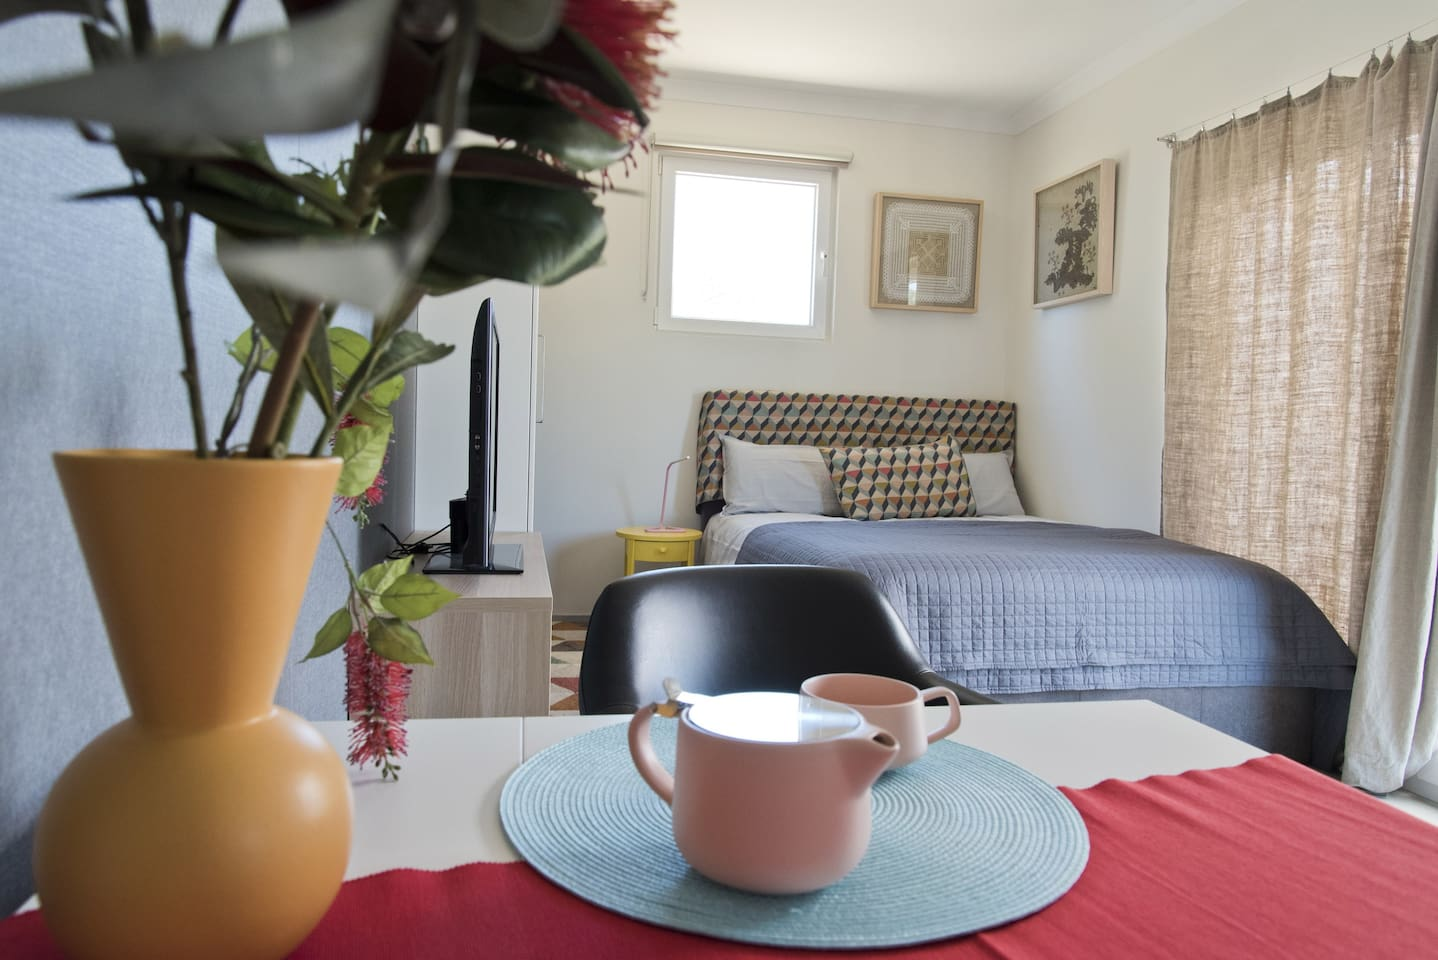 """""""Cosy little studio in walking distance to Margaret River shops & restaurants. Immaculately clean and very comfy! Would highly recommend!"""" - Anna (*****)"""